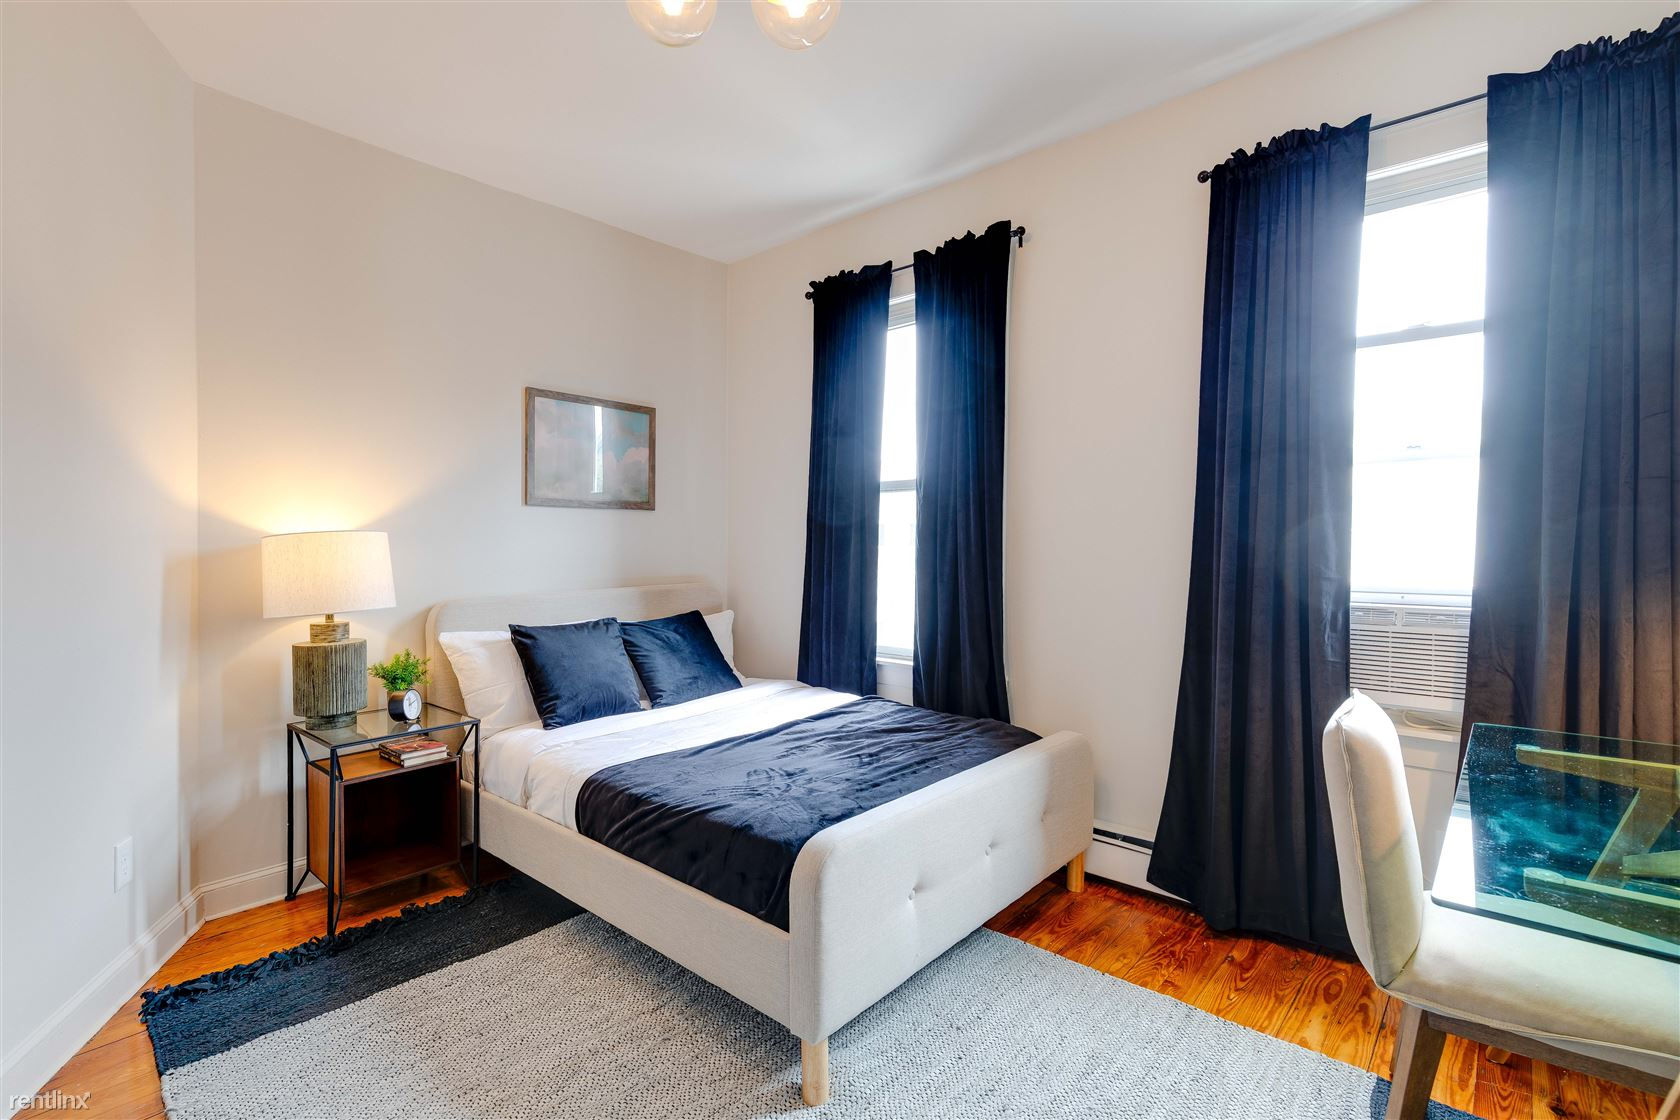 Room for Rent in Boston